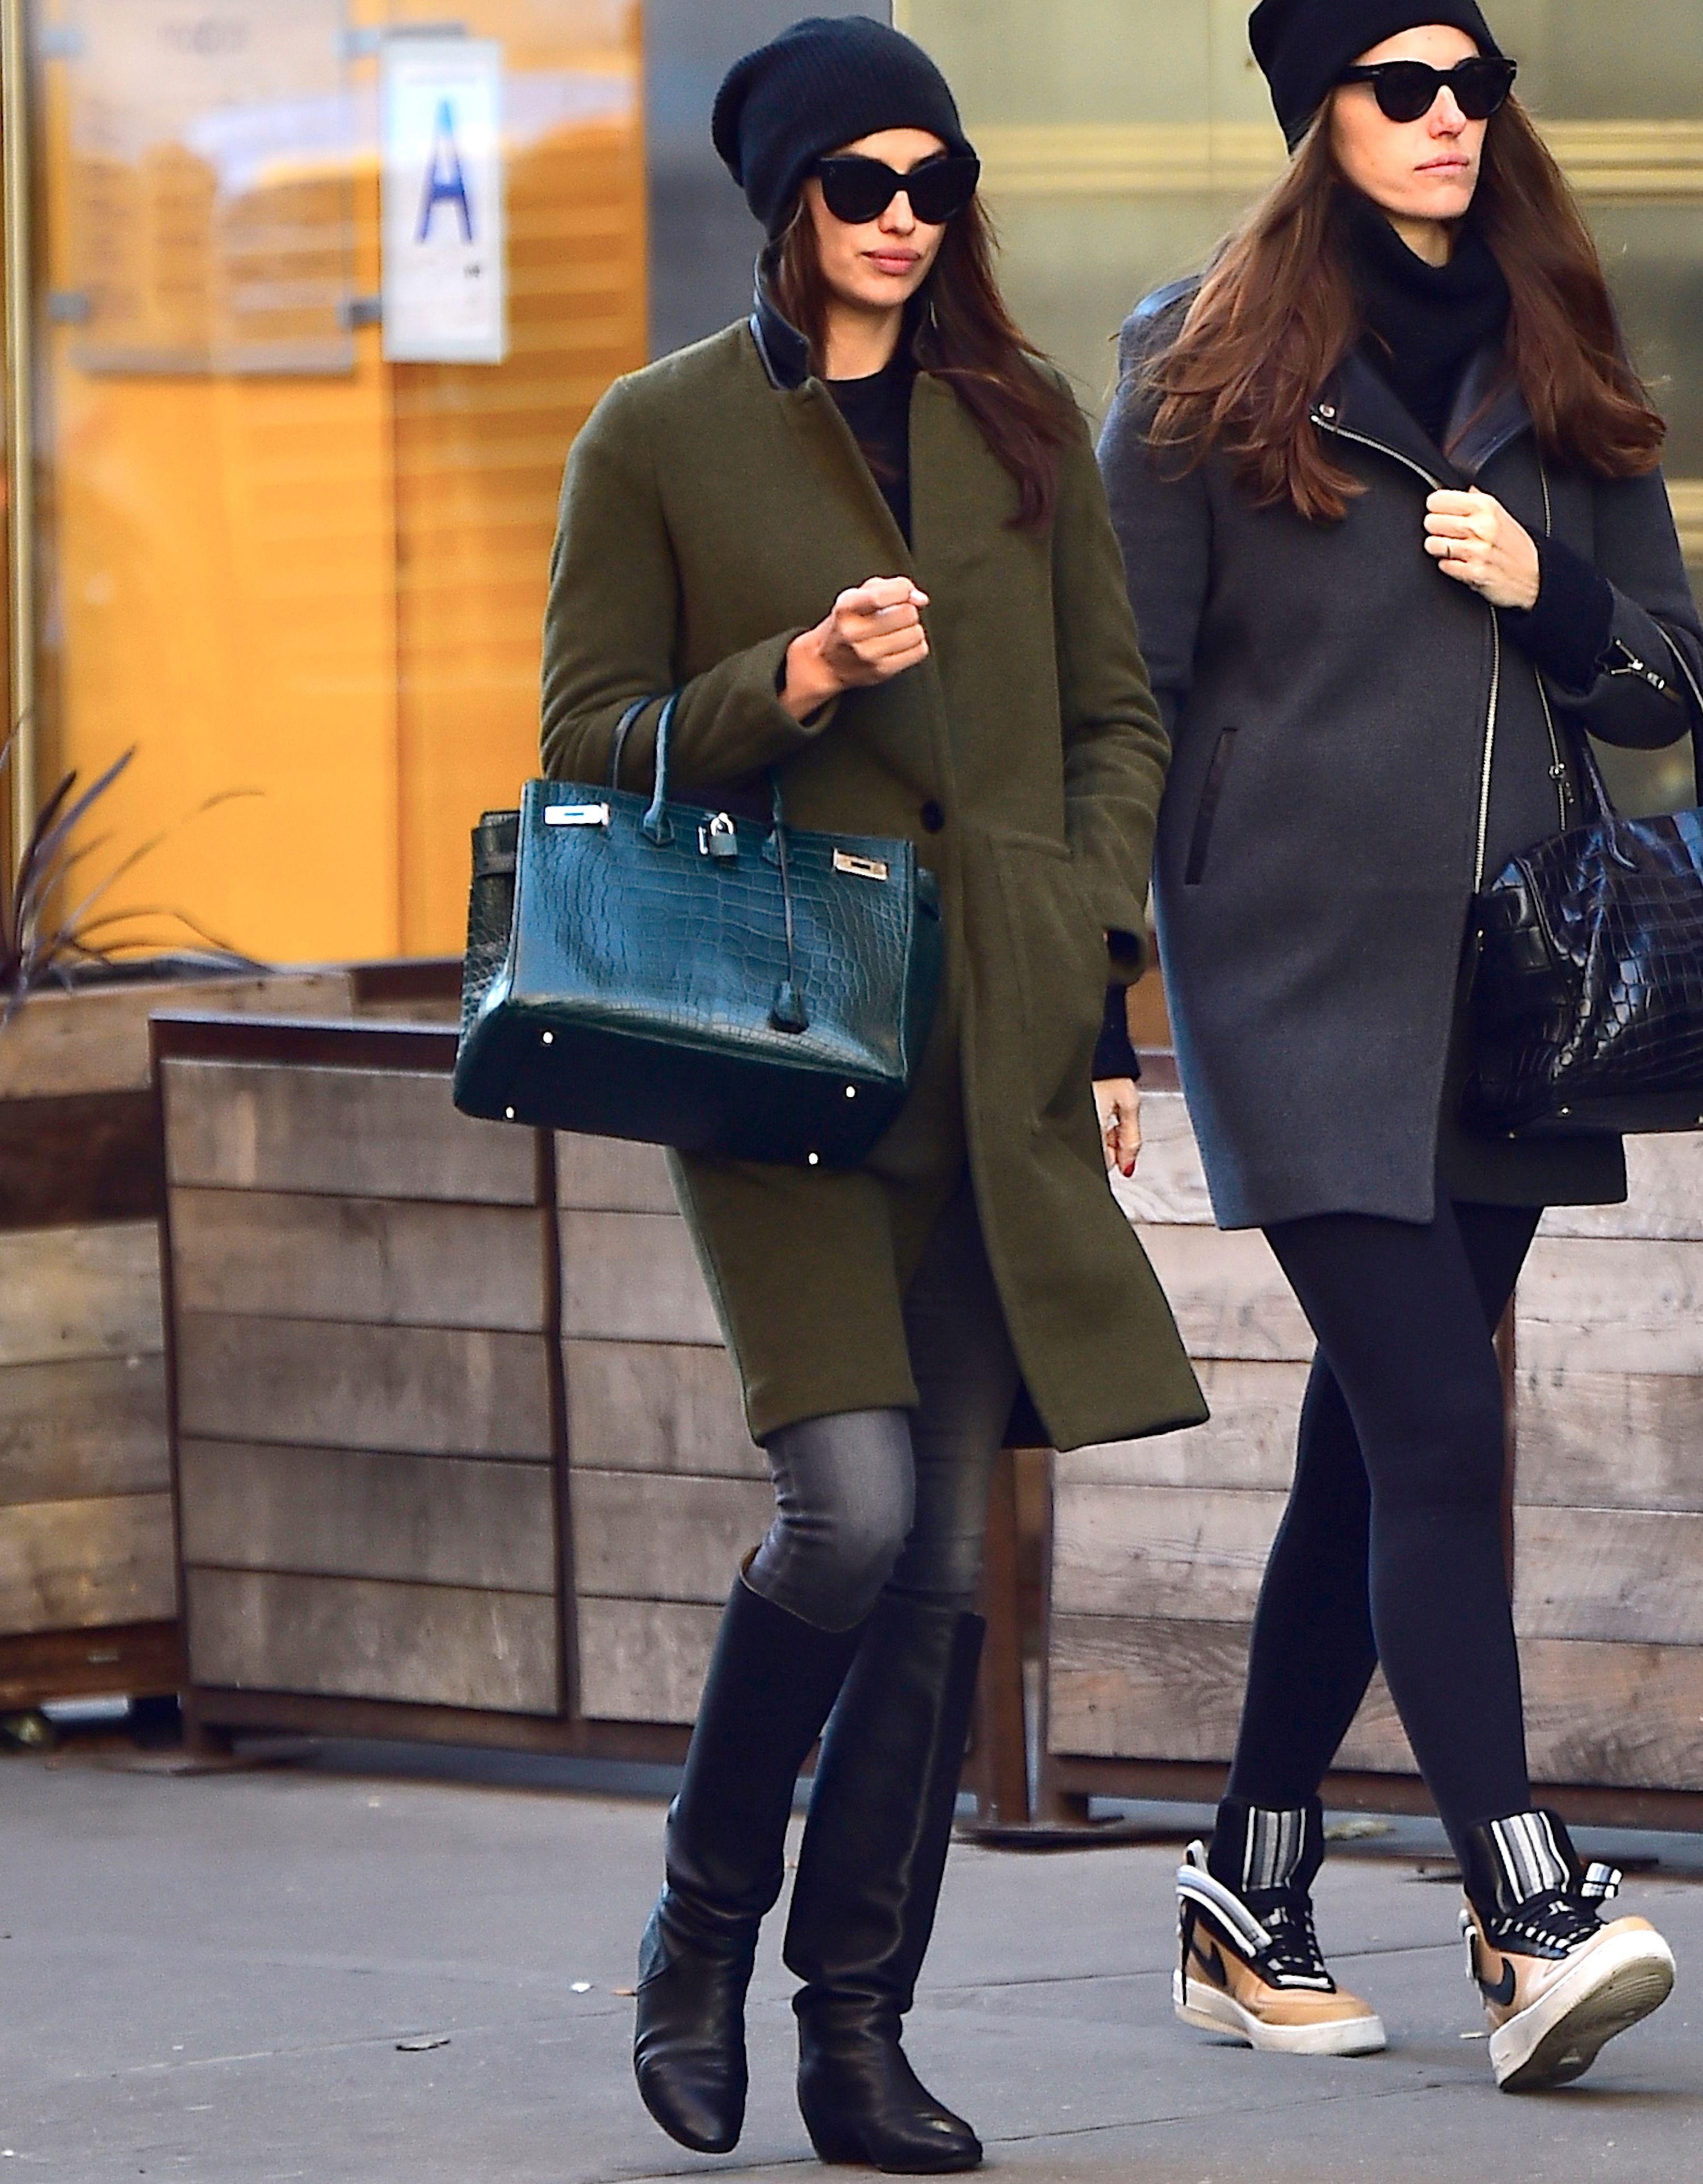 Irina Shayk elevated the casual winter hat with a tailored olive green  coat 36b3a646458